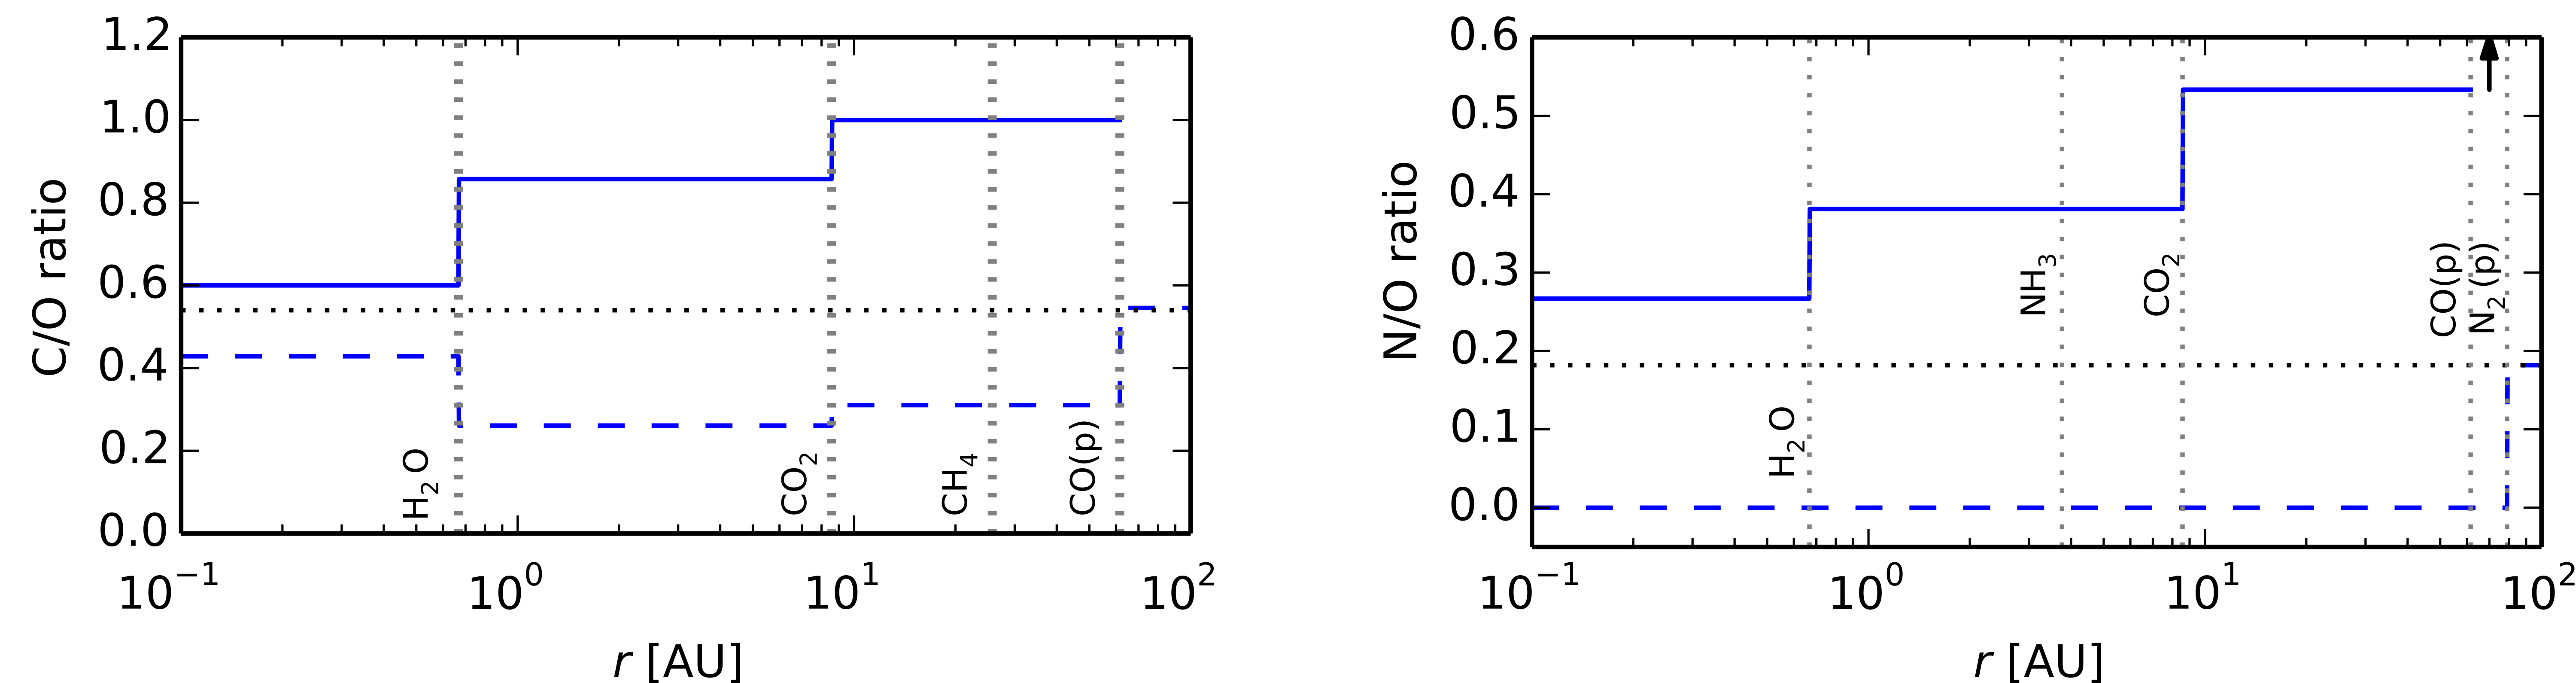 Figure 1. C/O and N/O ratios in protoplanetary disks over a wide range of distances. The snow lines of each molecule are marked with vertical dashed lines. With C/O = 1.0 and N/O = 0.5, my planet gift probably formed between the CO2 and CO snow lines. But where are these lines actually located? Taken from Fig. 2 of the featured paper.